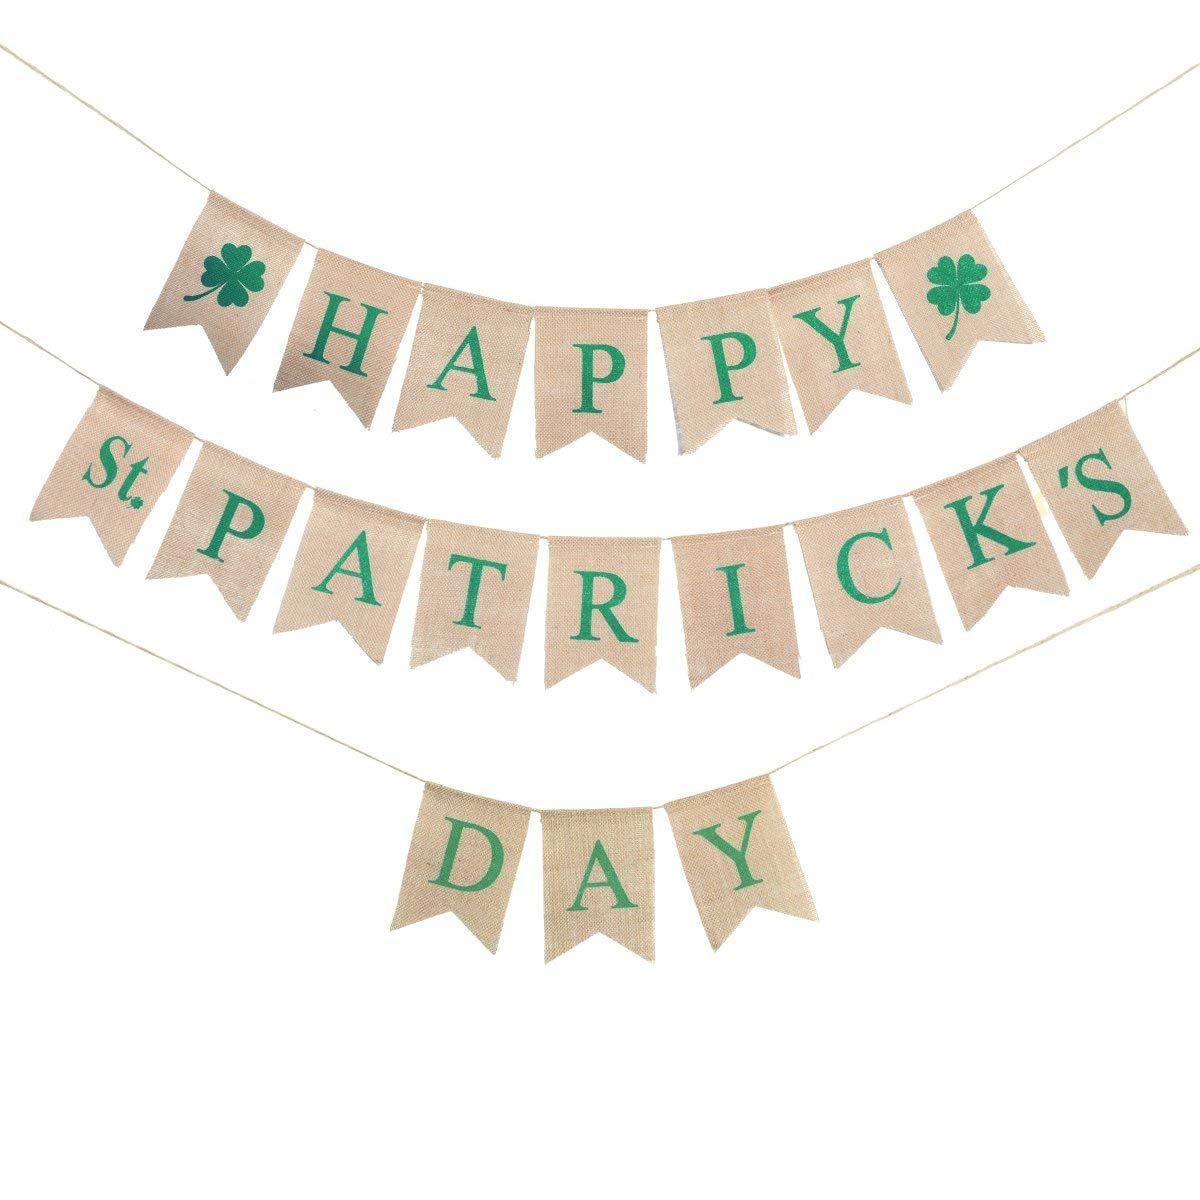 Happy St Patrick's Day Banner OULII Green Shamrock Banners Irish Four Leaf Clover Bunting Banner Garland St.Patrick Day Party Parade Decorations